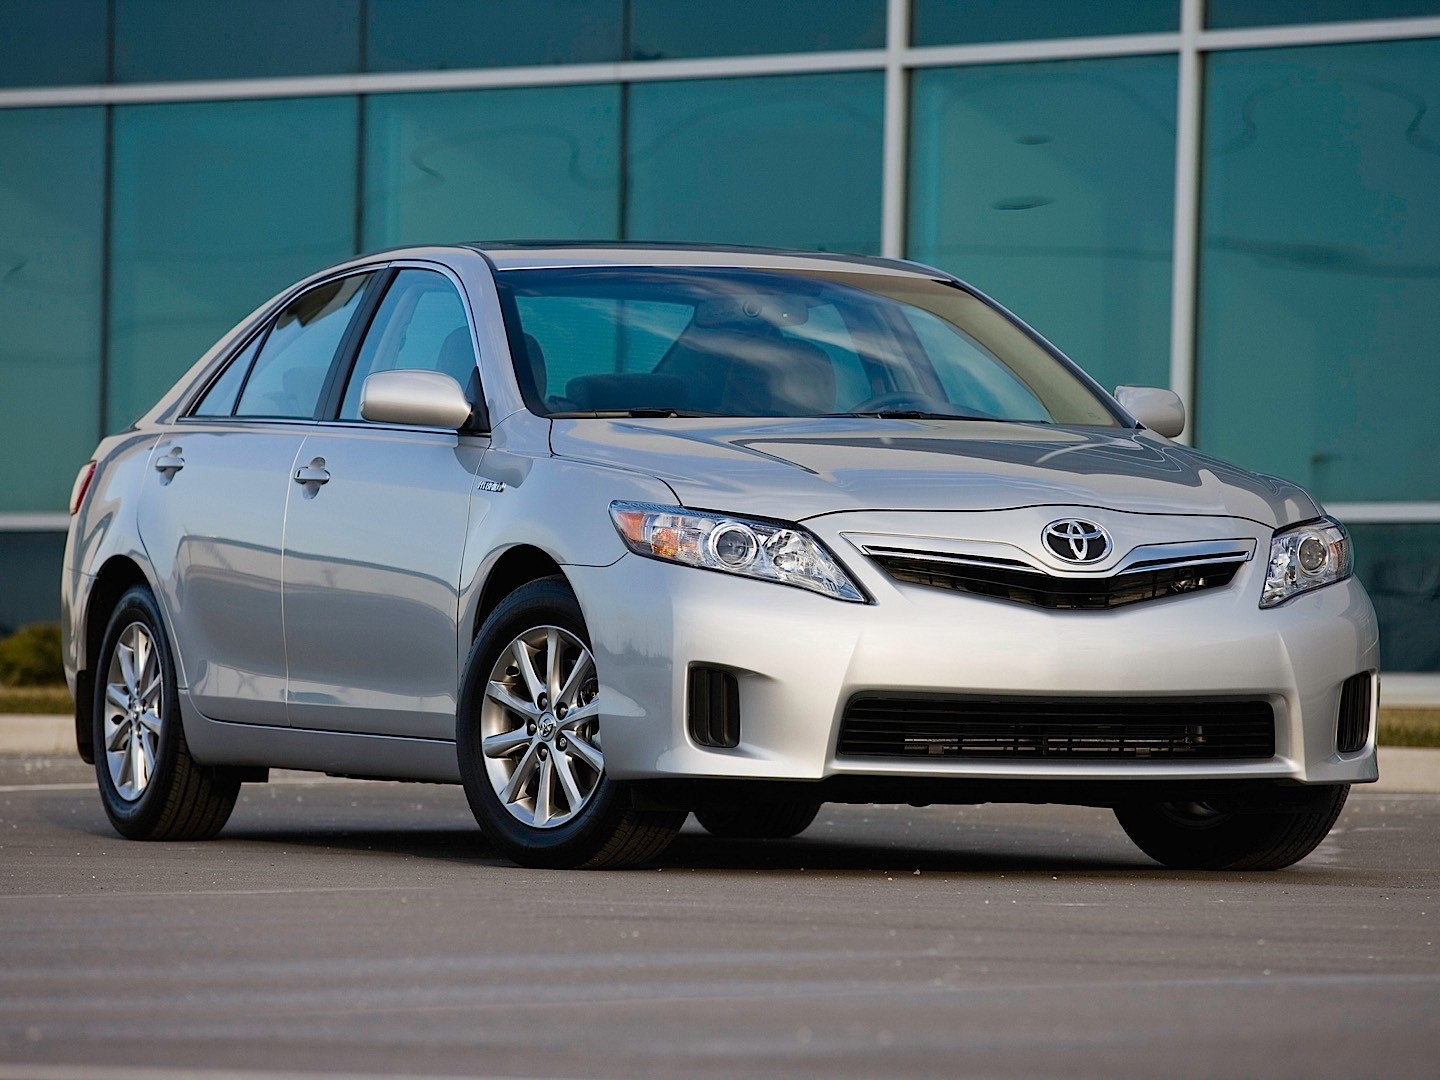 2014 toyota camry hybrid when it will release in the. Black Bedroom Furniture Sets. Home Design Ideas